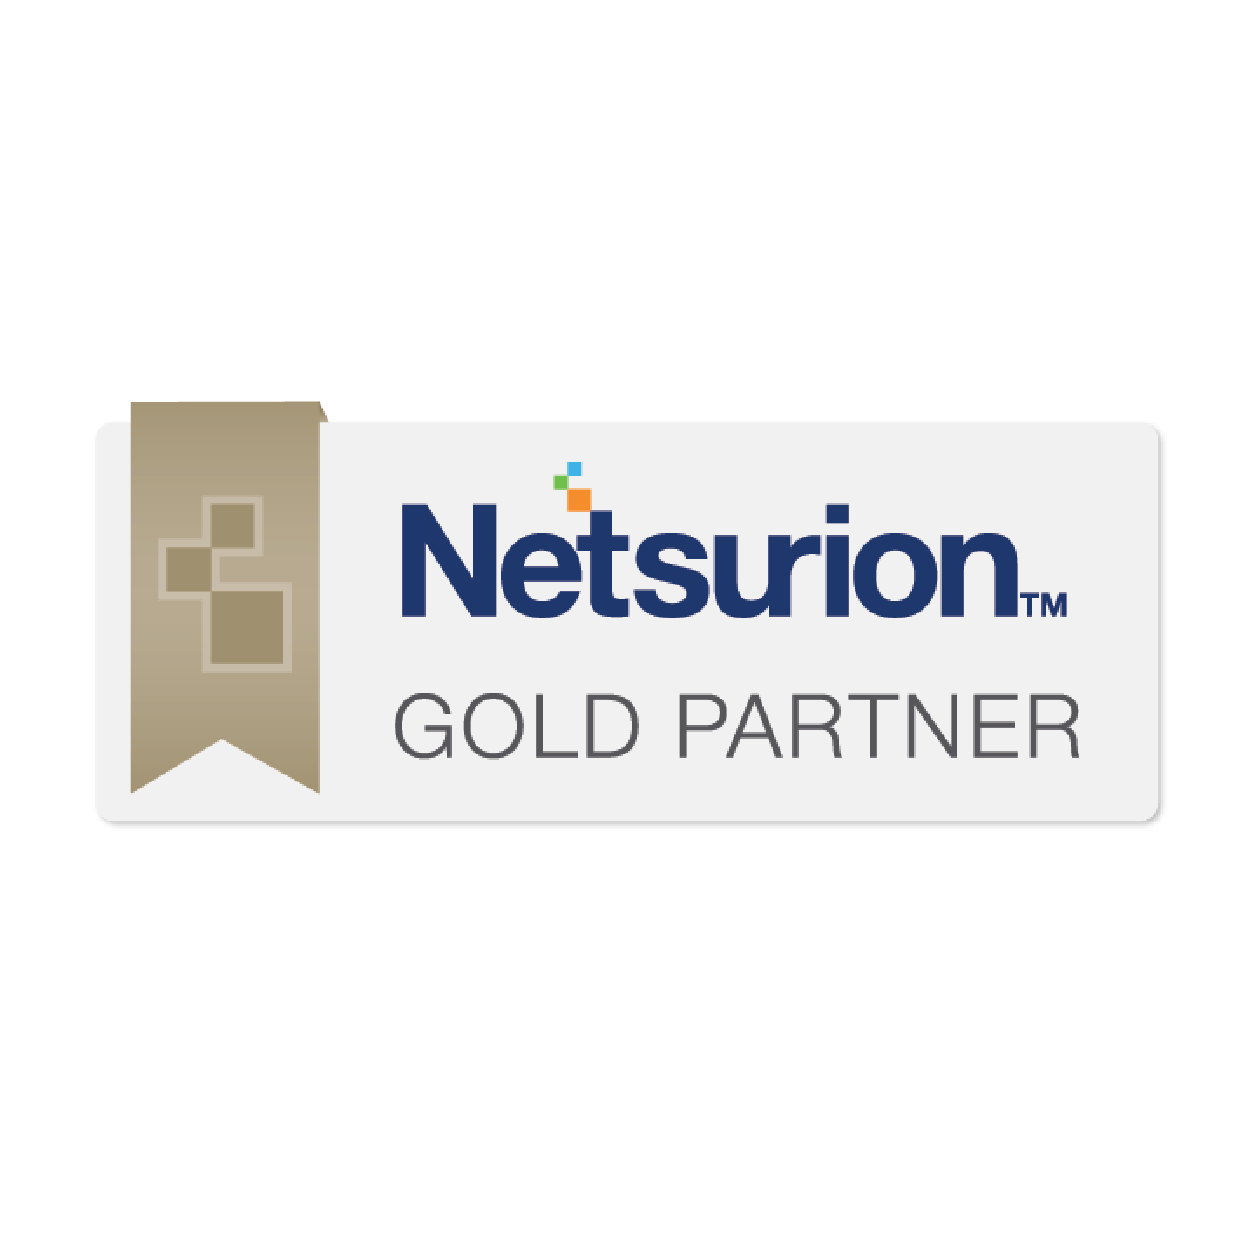 netsurion gold partner